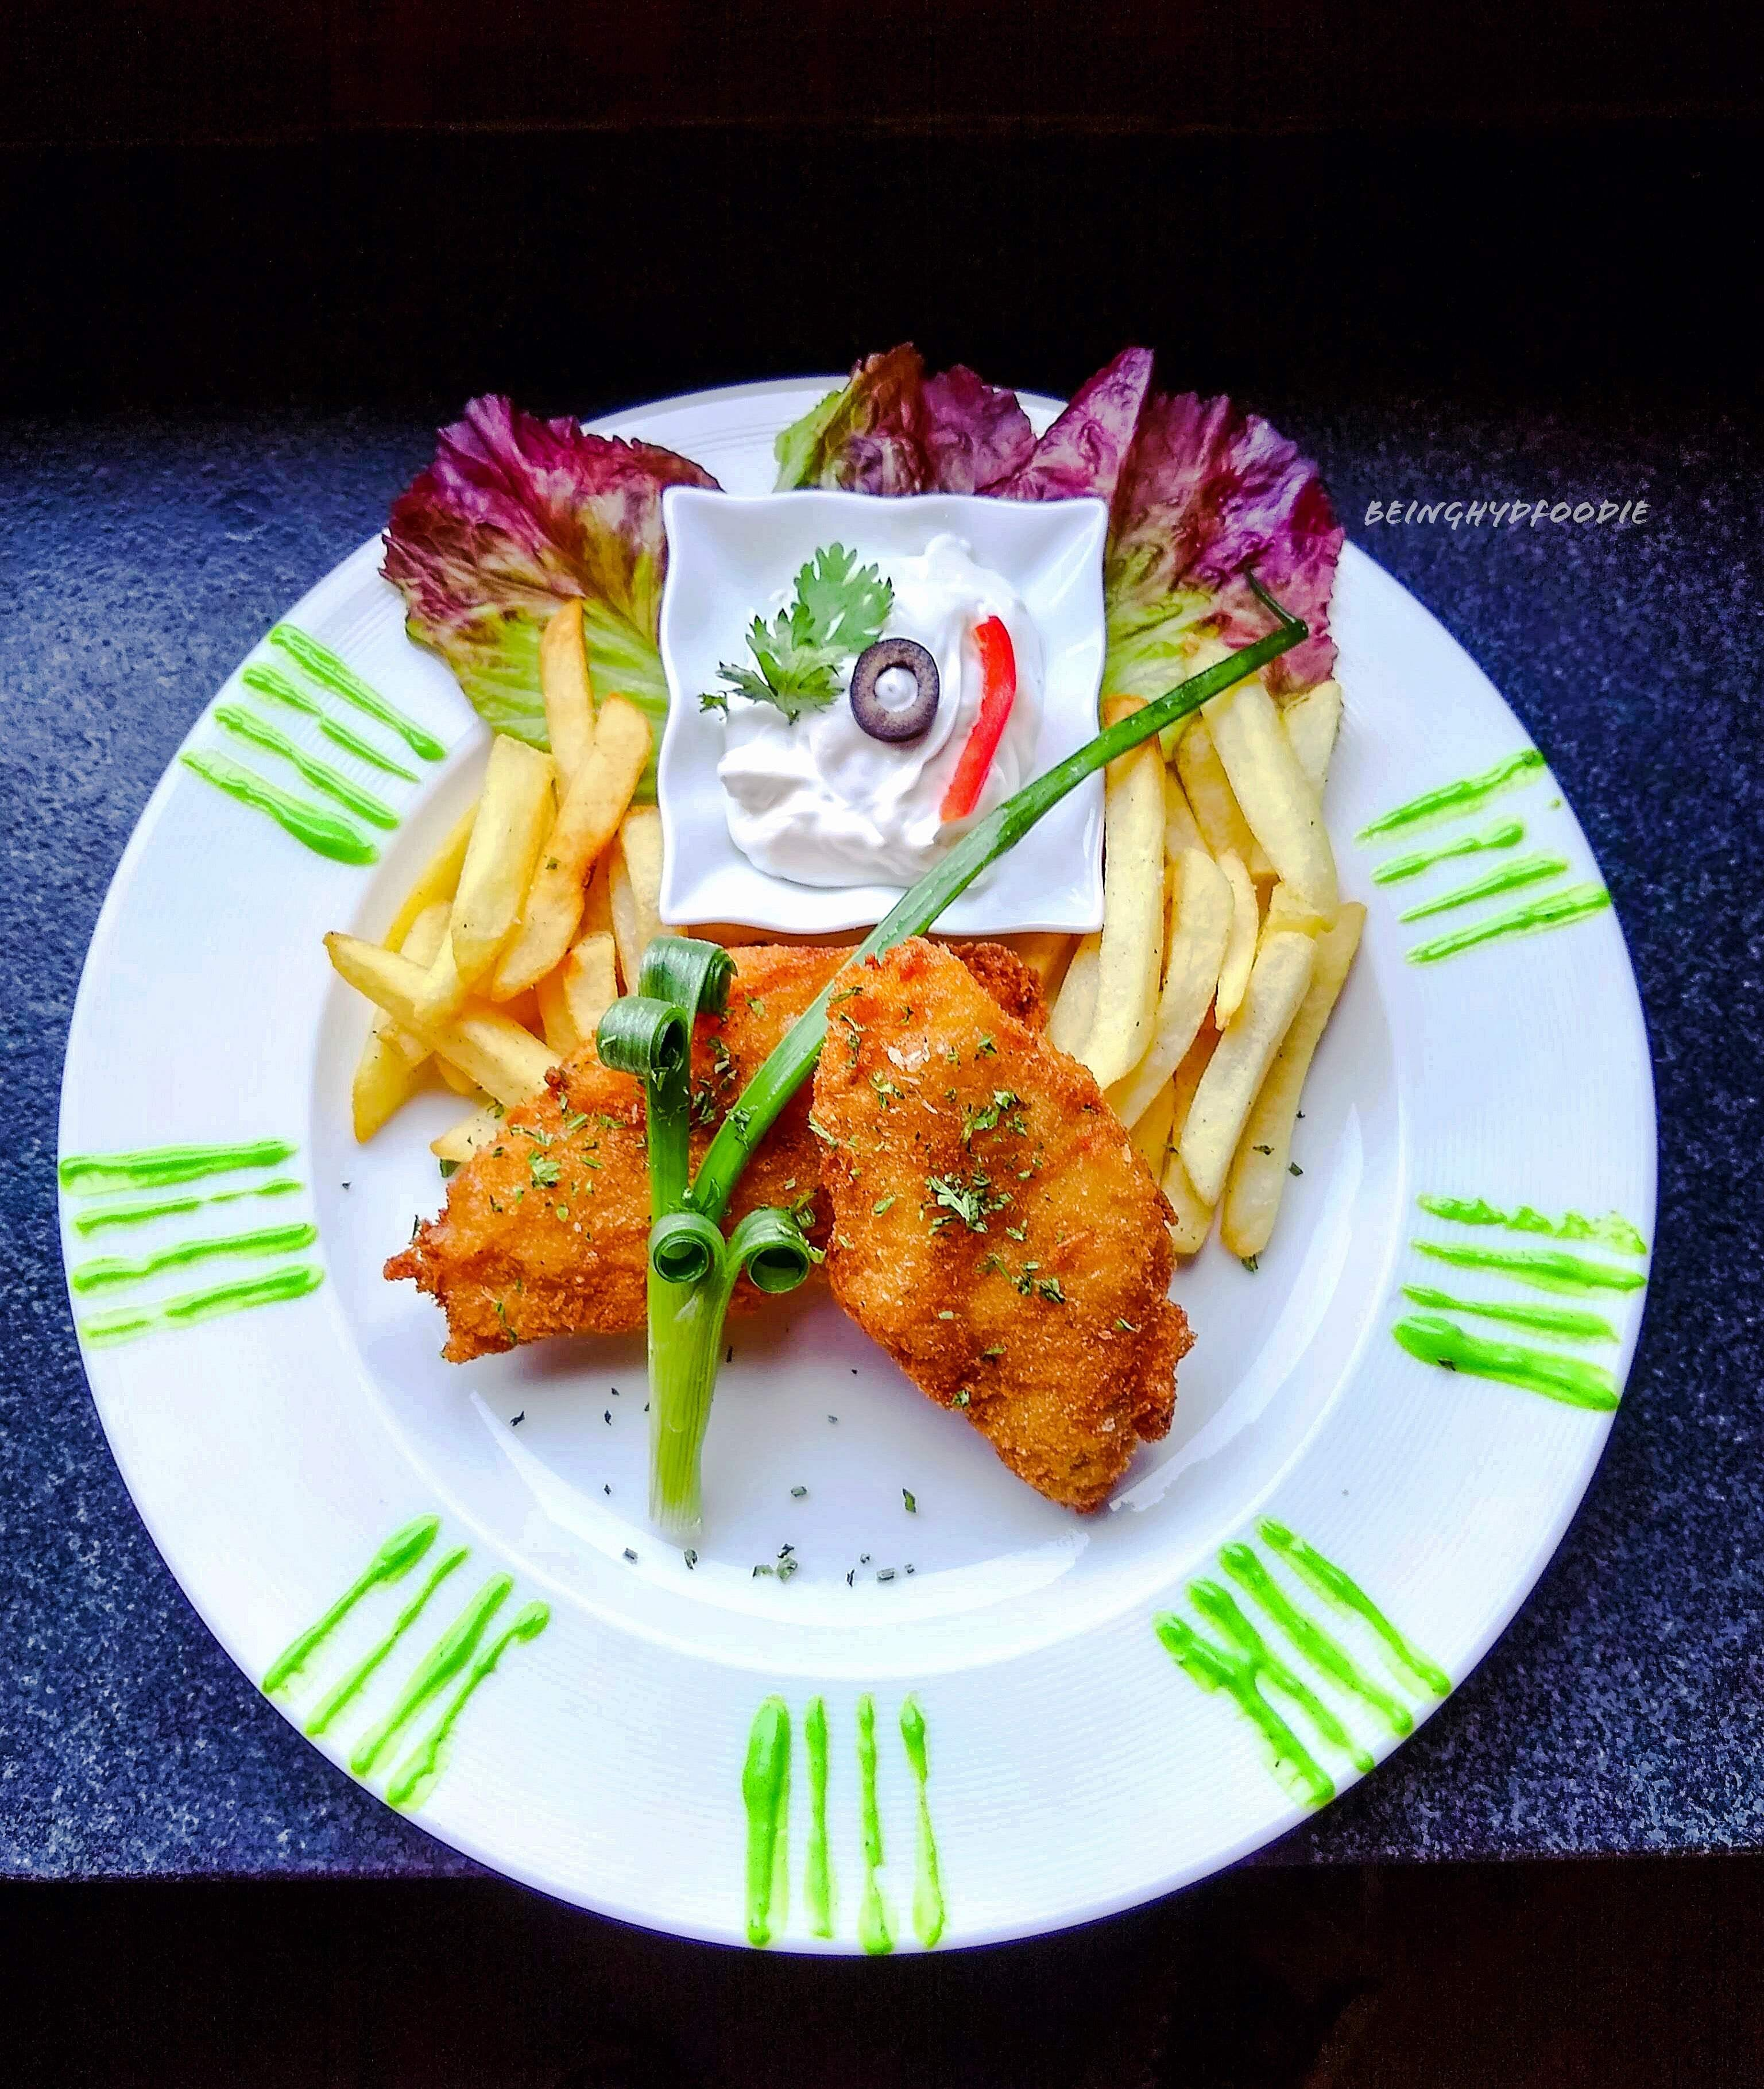 Dish,Food,Cuisine,Ingredient,Fried food,French fries,Garnish,Produce,Meat,Side dish